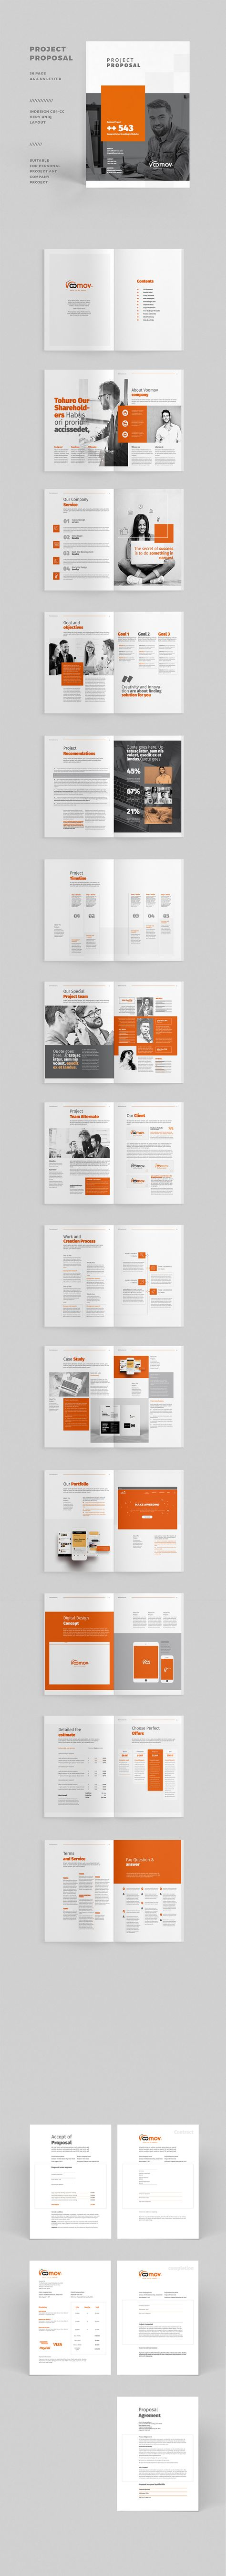 17 Best Images About Contract/proposal Layouts On Pinterest | Studios,  Stationery And Fonts Download